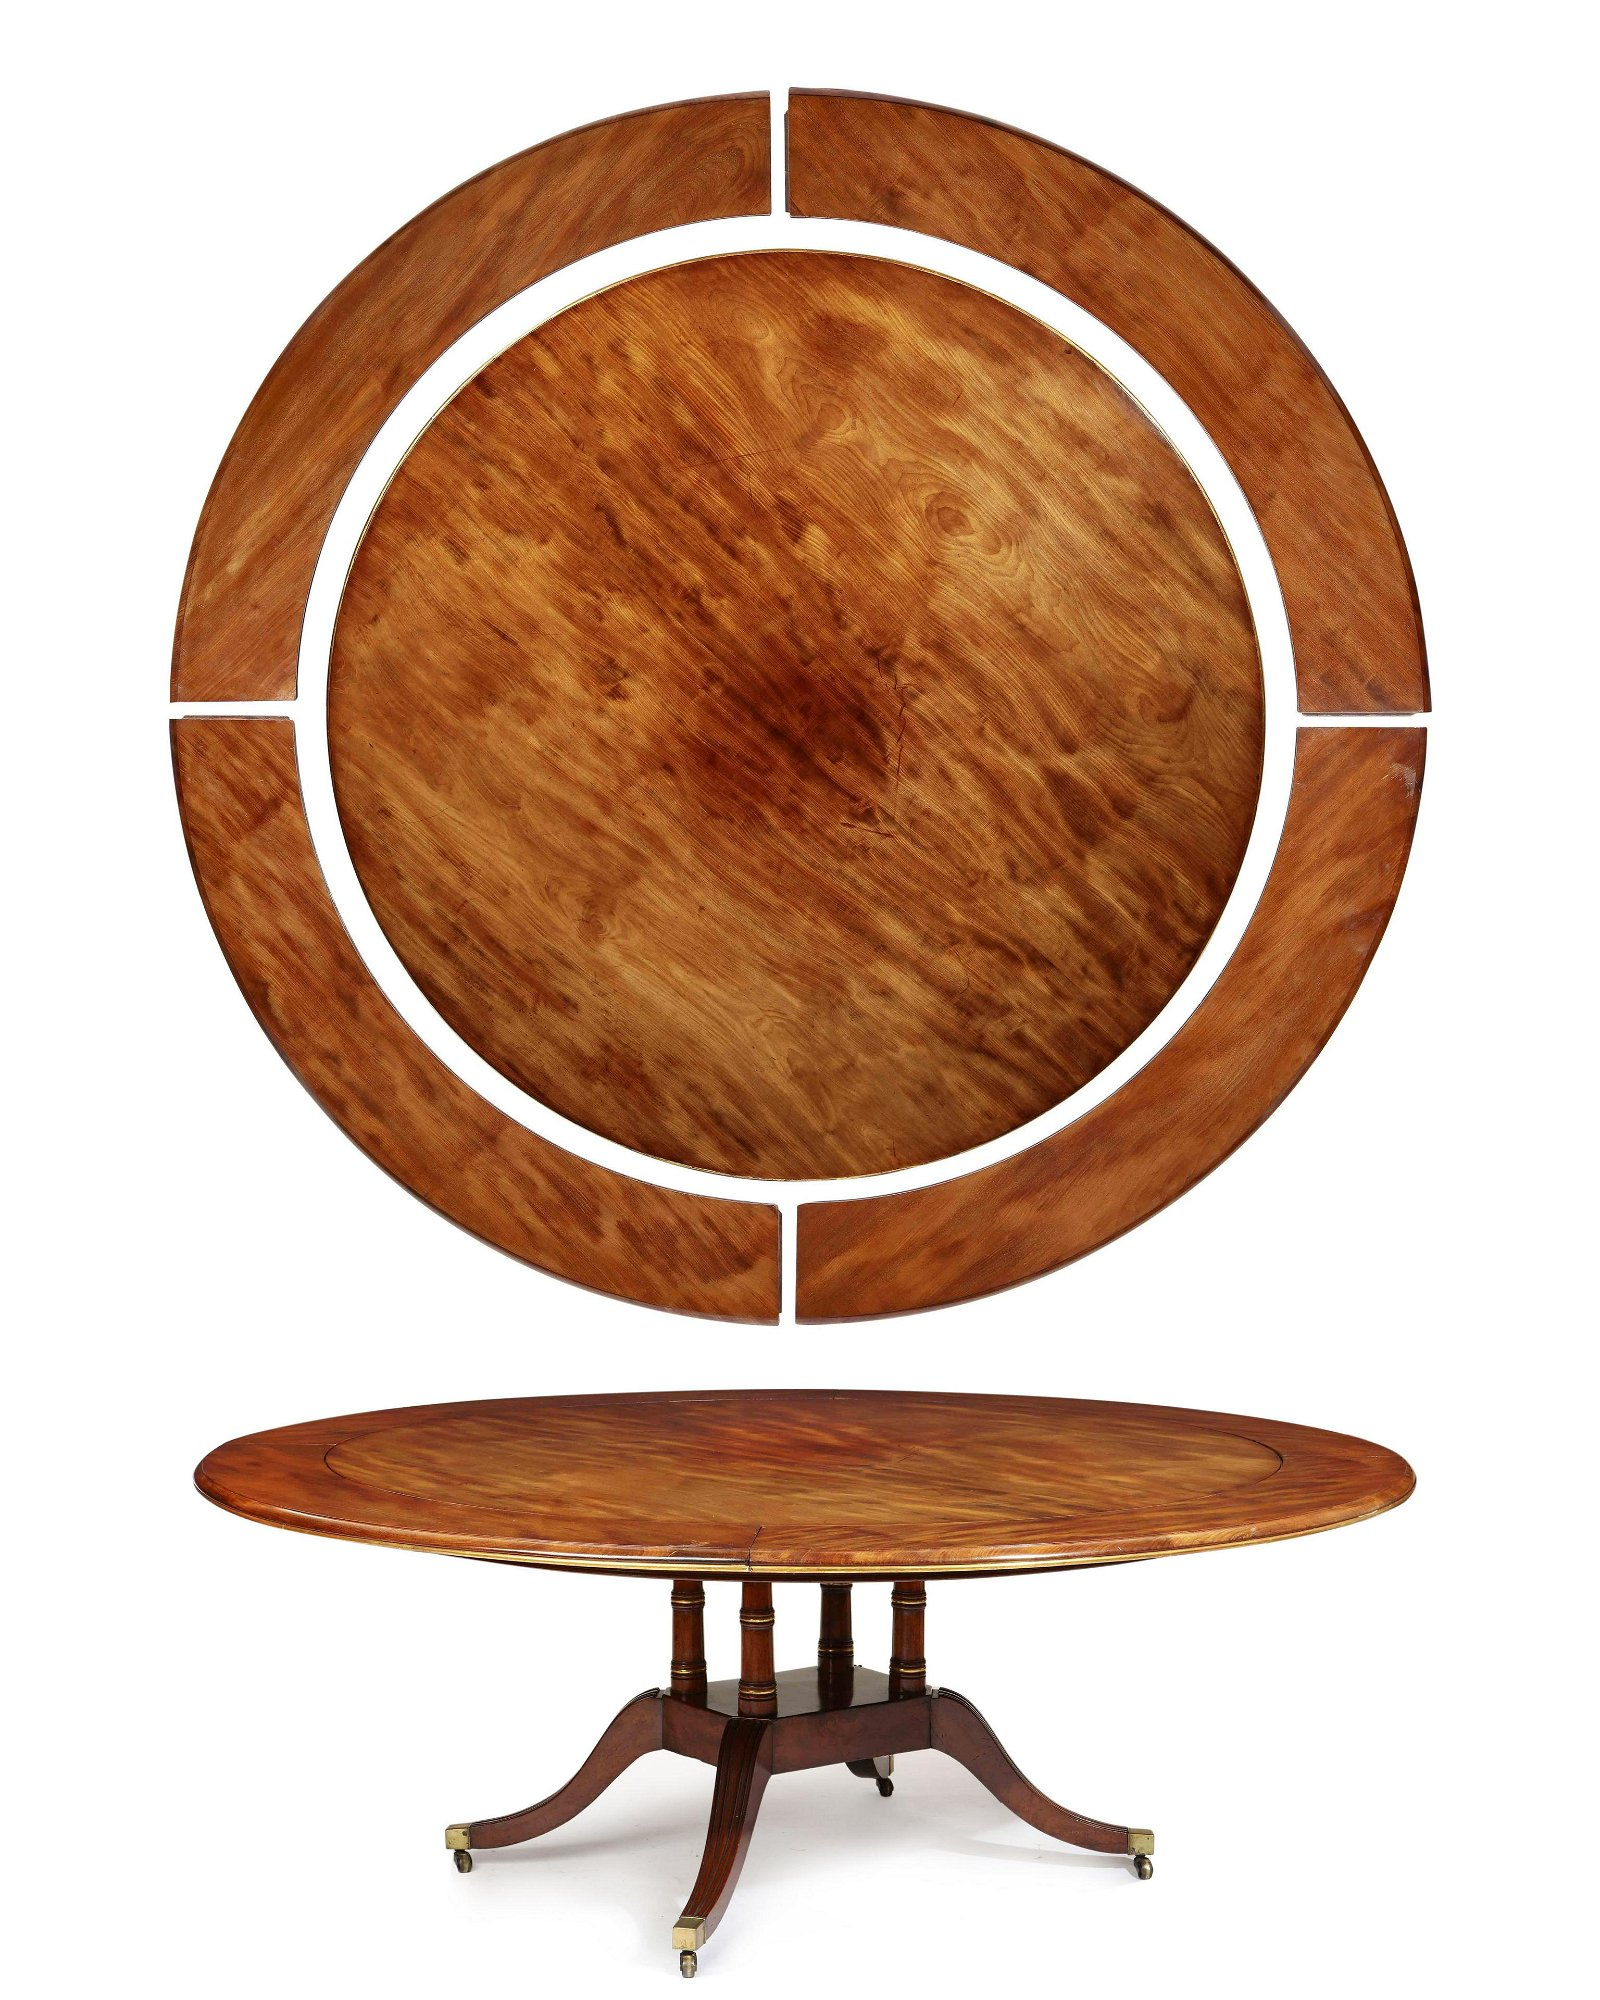 A  Regency mahogany concentric dining table